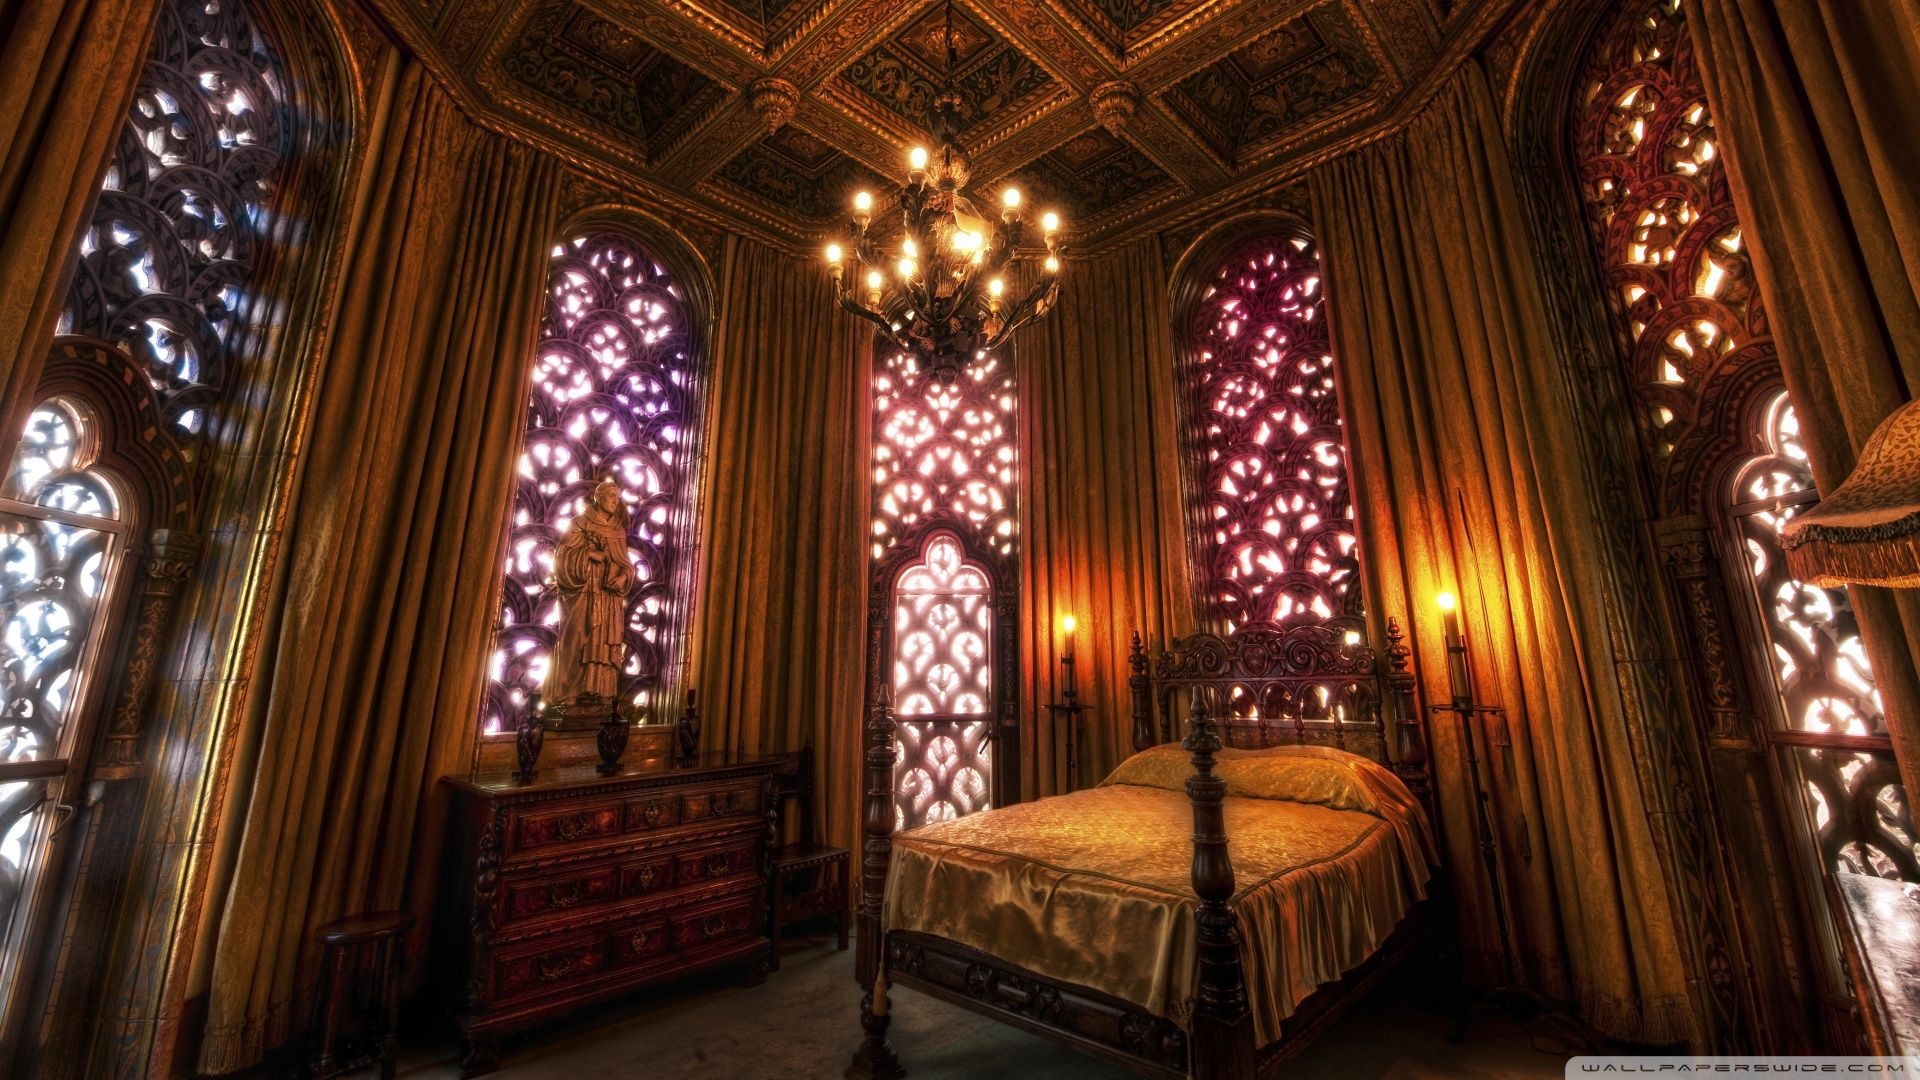 Castle master bedroom - Bedroom From William Randolph Hearst S Private Residence Hearst Castle 1920 S While There